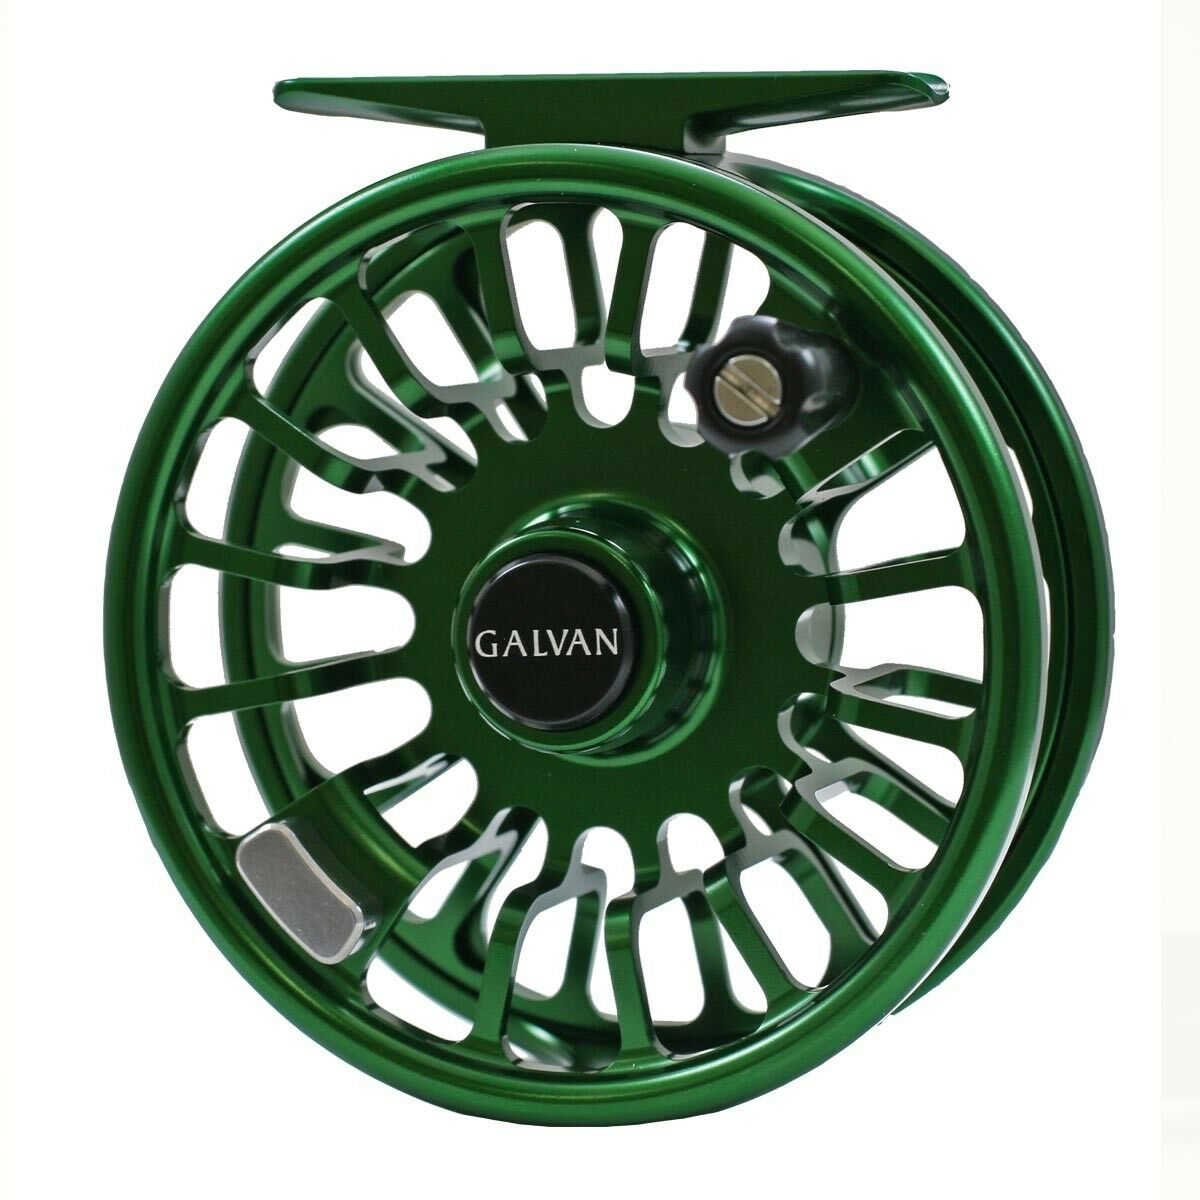 Galvan Torque T-12 Fly Reel - Green - NEW - FREE FLY LINE